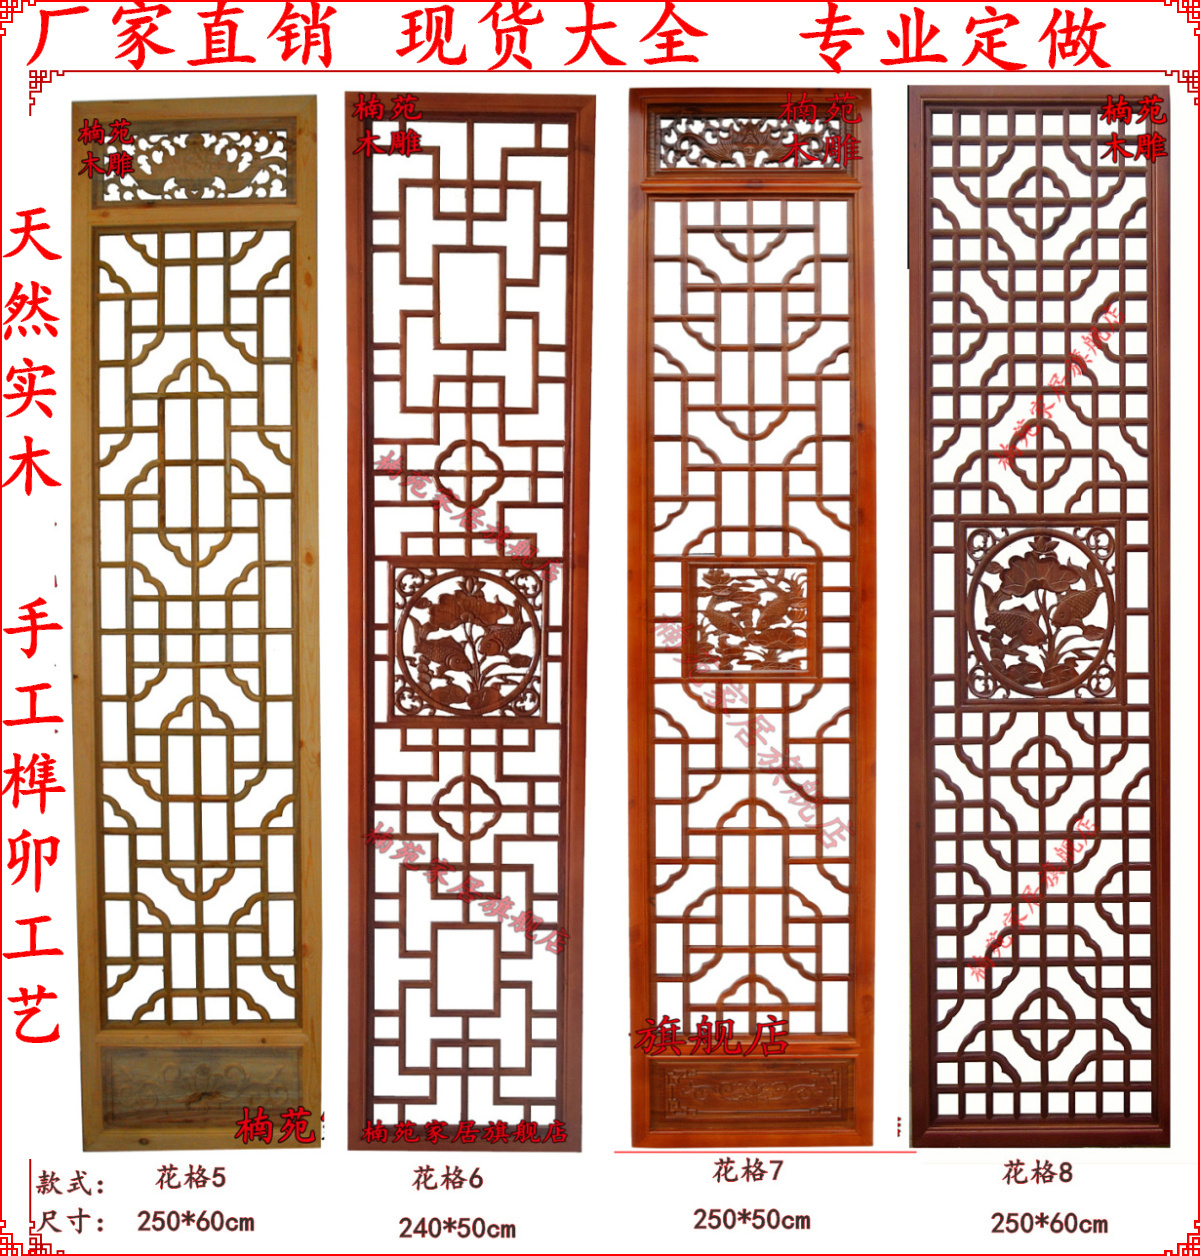 Dongyang wood carving chinese grillwork tv backdrop antique doors and windows off screen porch hollow spot